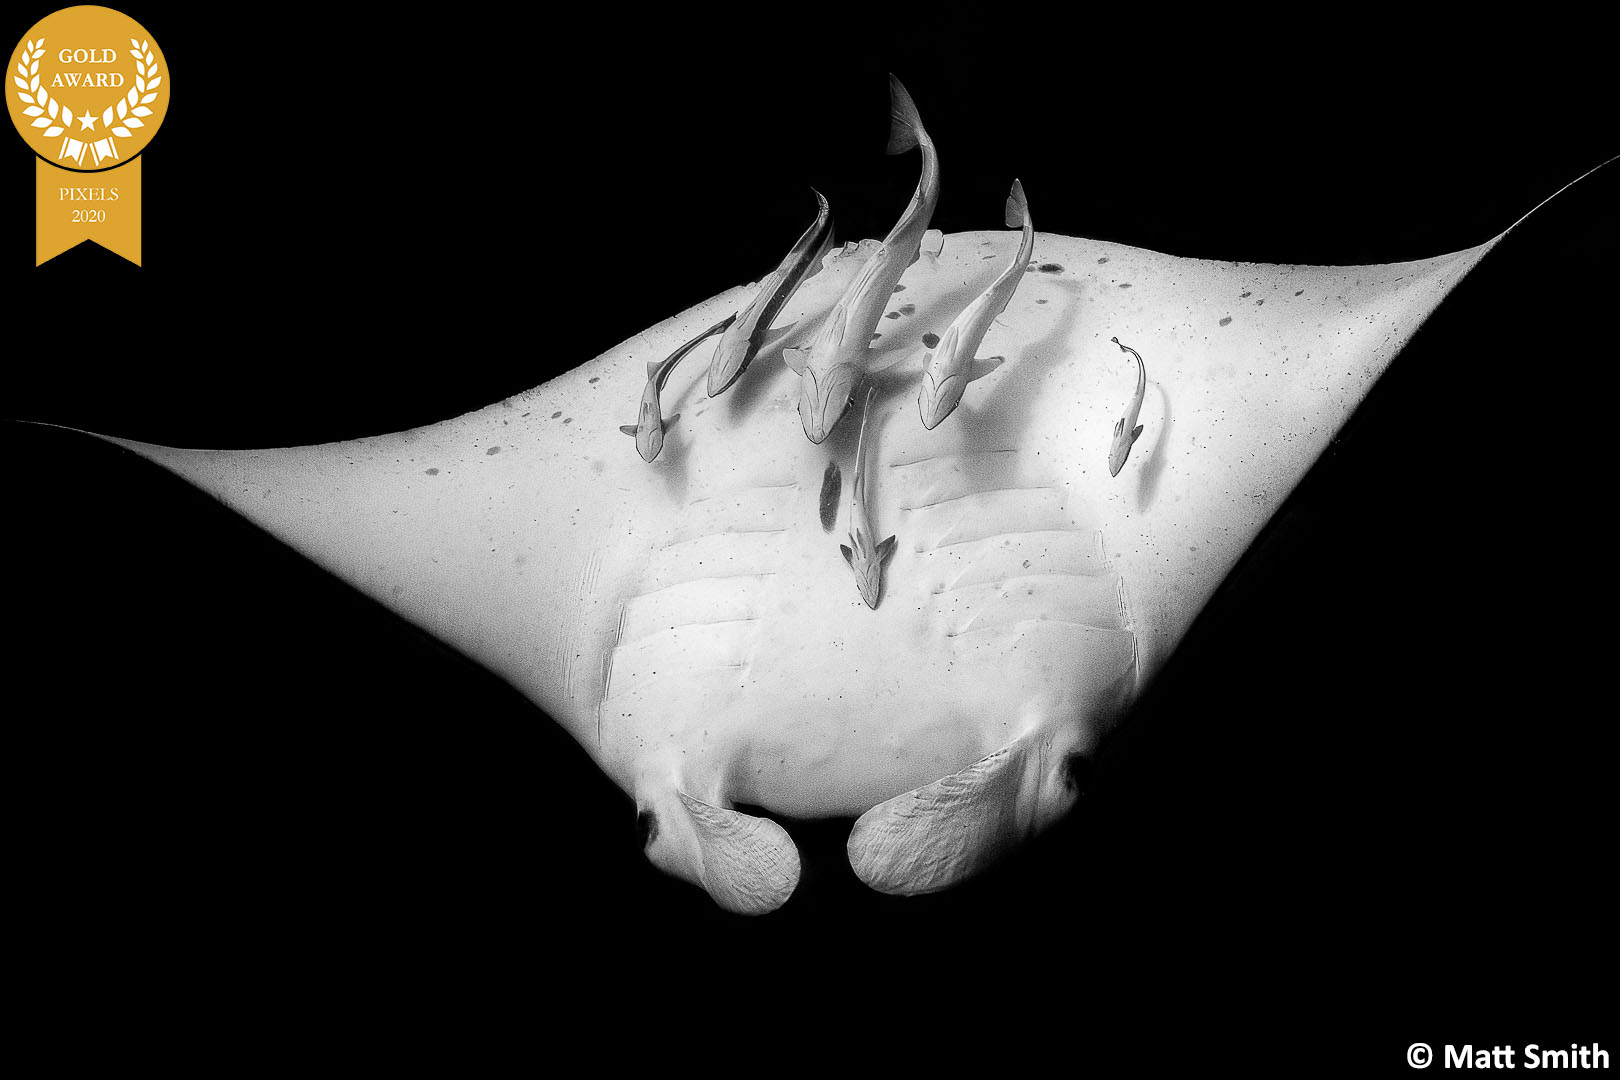 11-Matt-Smith_PIXELS-May-2020_Manta-Ray-with-Remoras